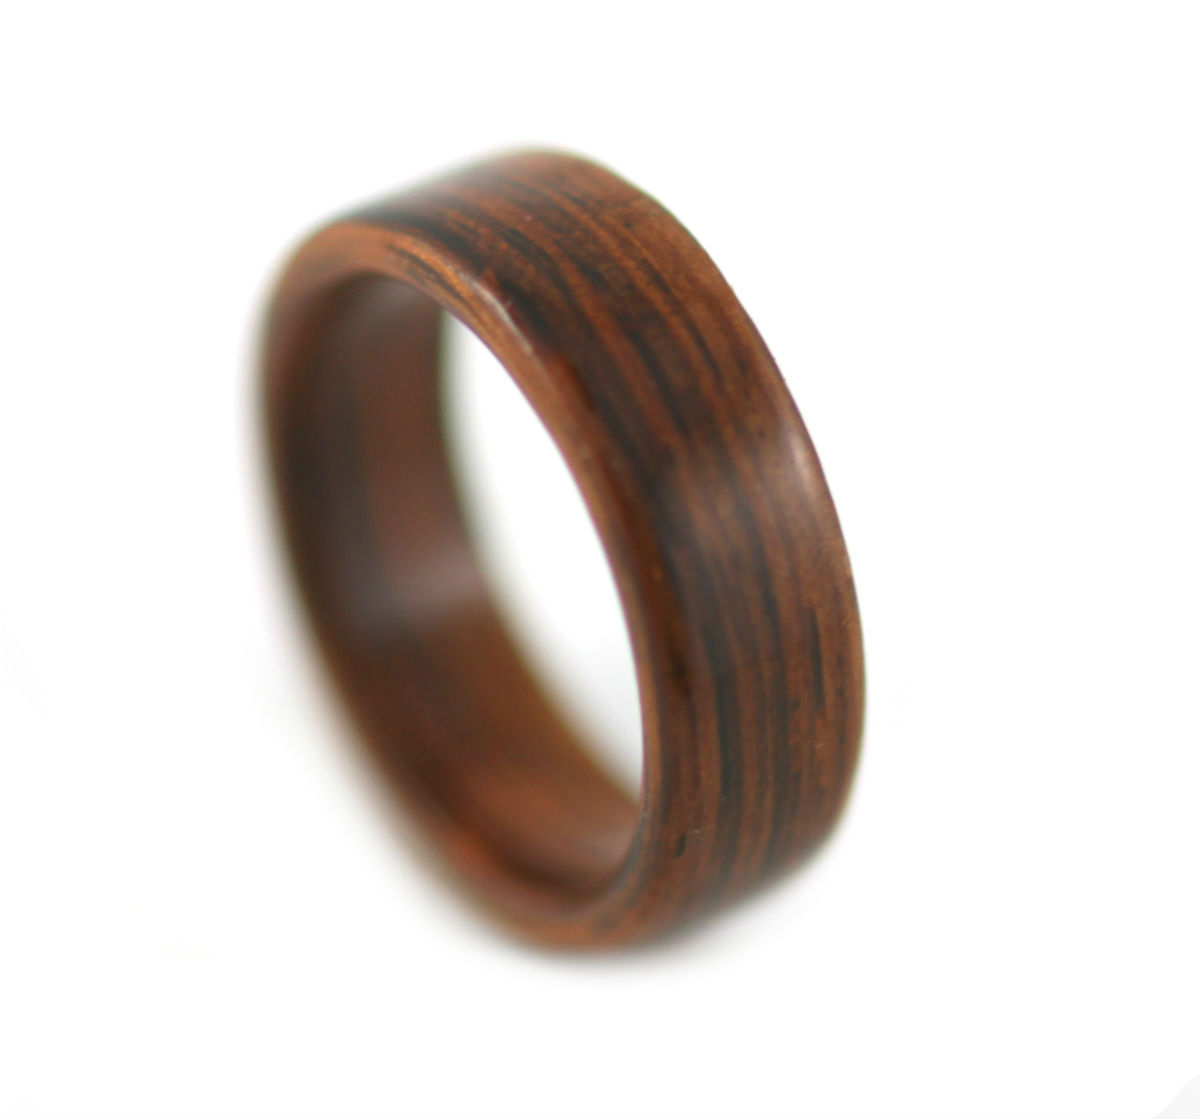 Ecoconscious Simply Wood Rings